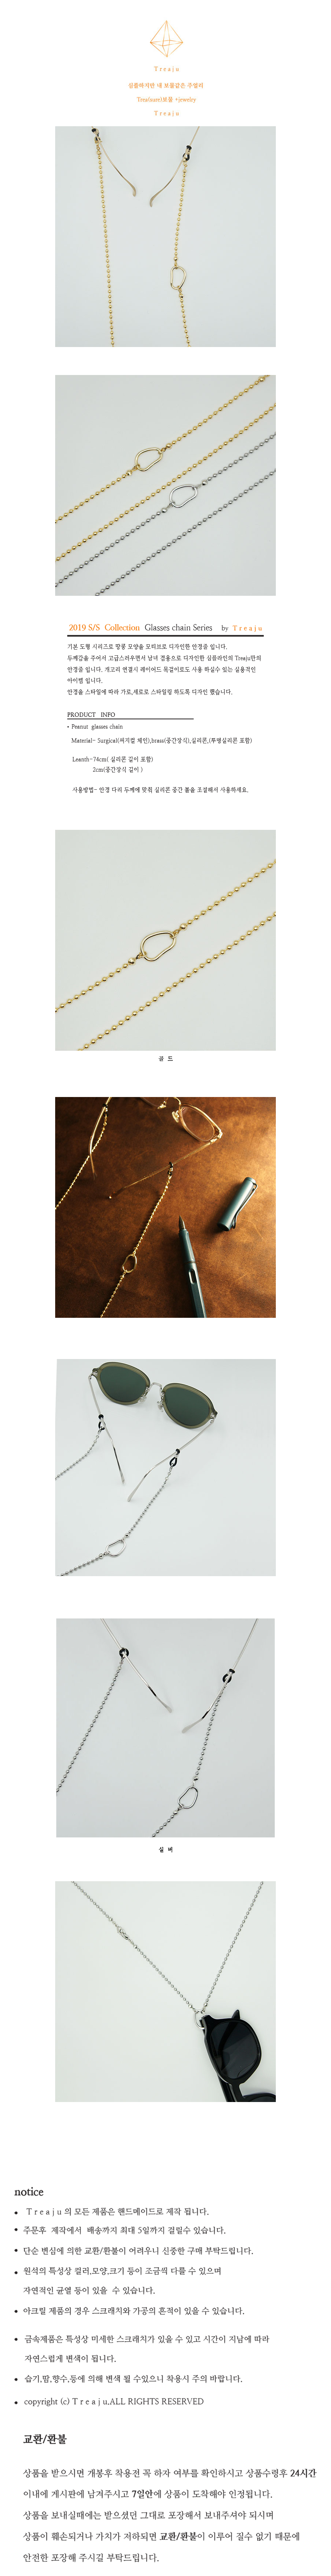 트레쥬(TREAJU) Peanut glasses chain